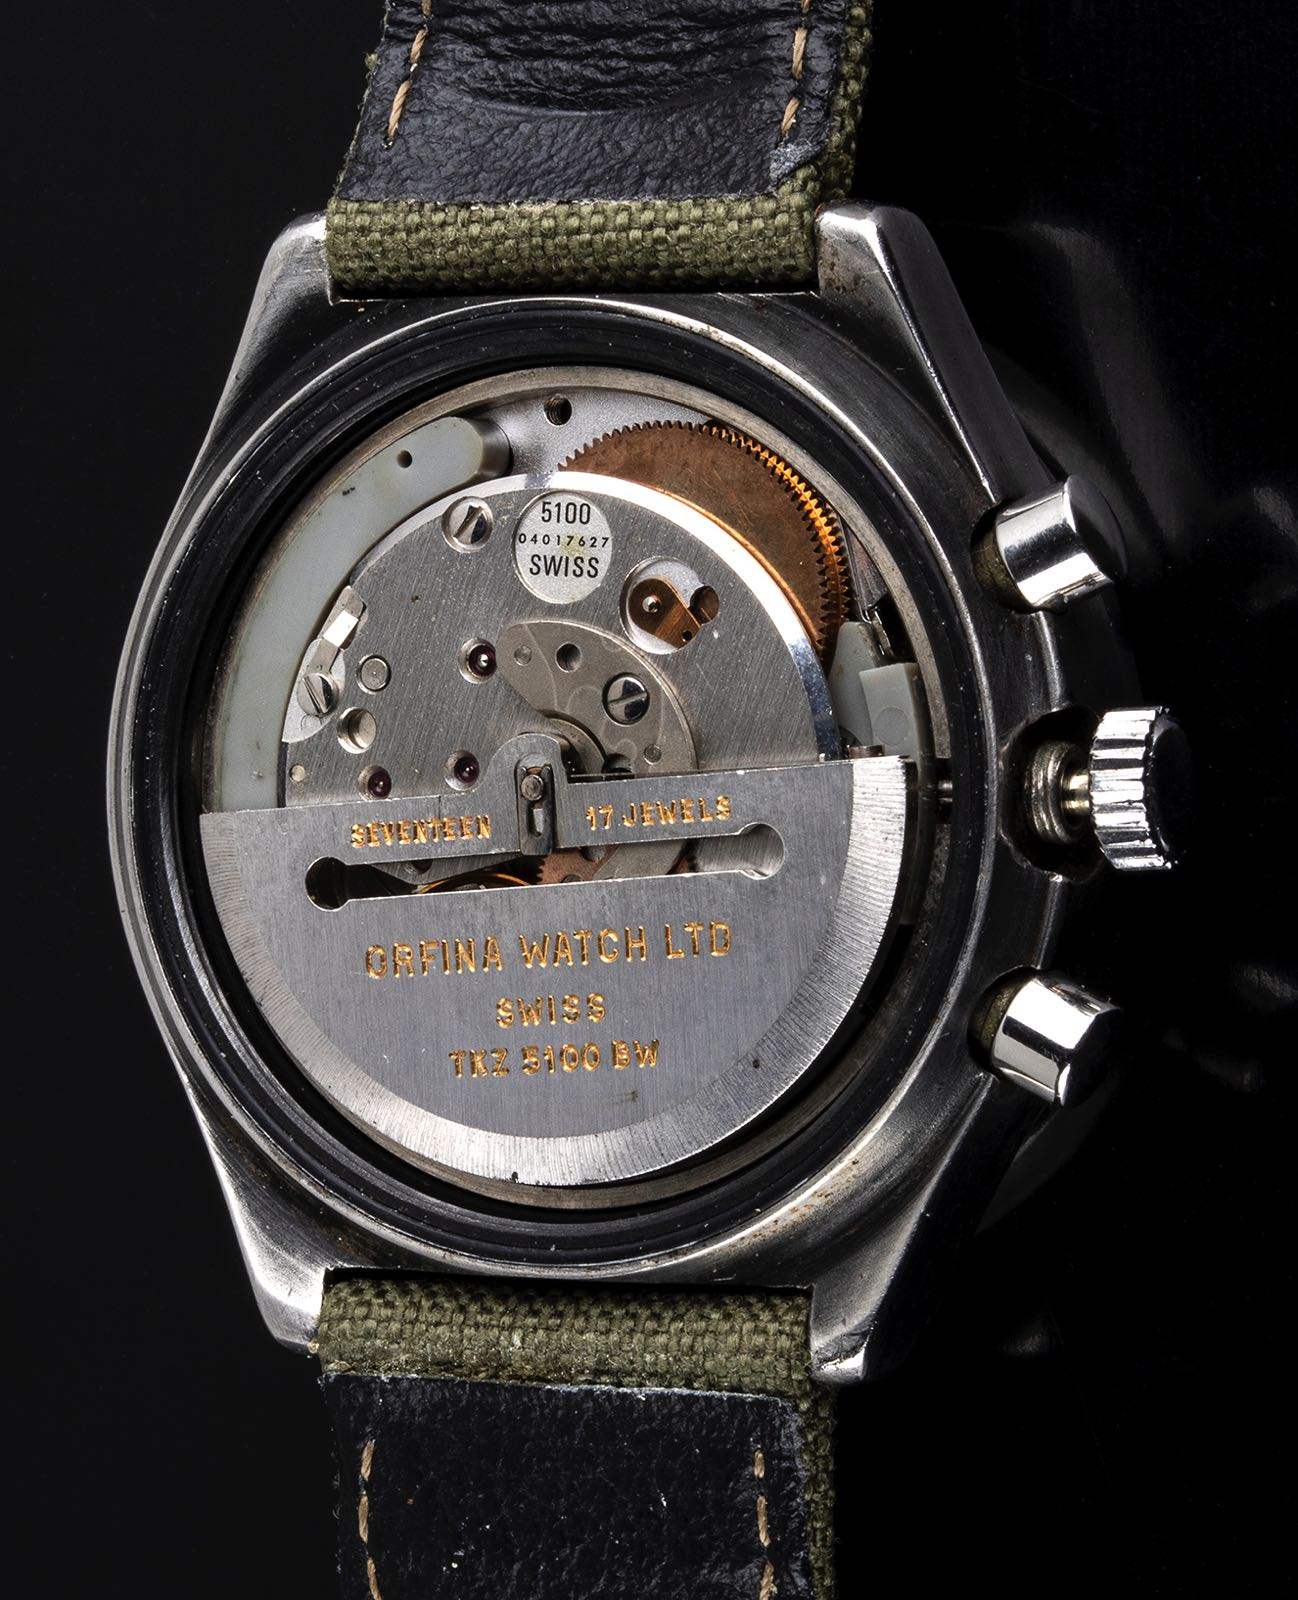 Porsche Design by Orfina Military assigned chronograph ref 7177 1980's - Image 2 of 4